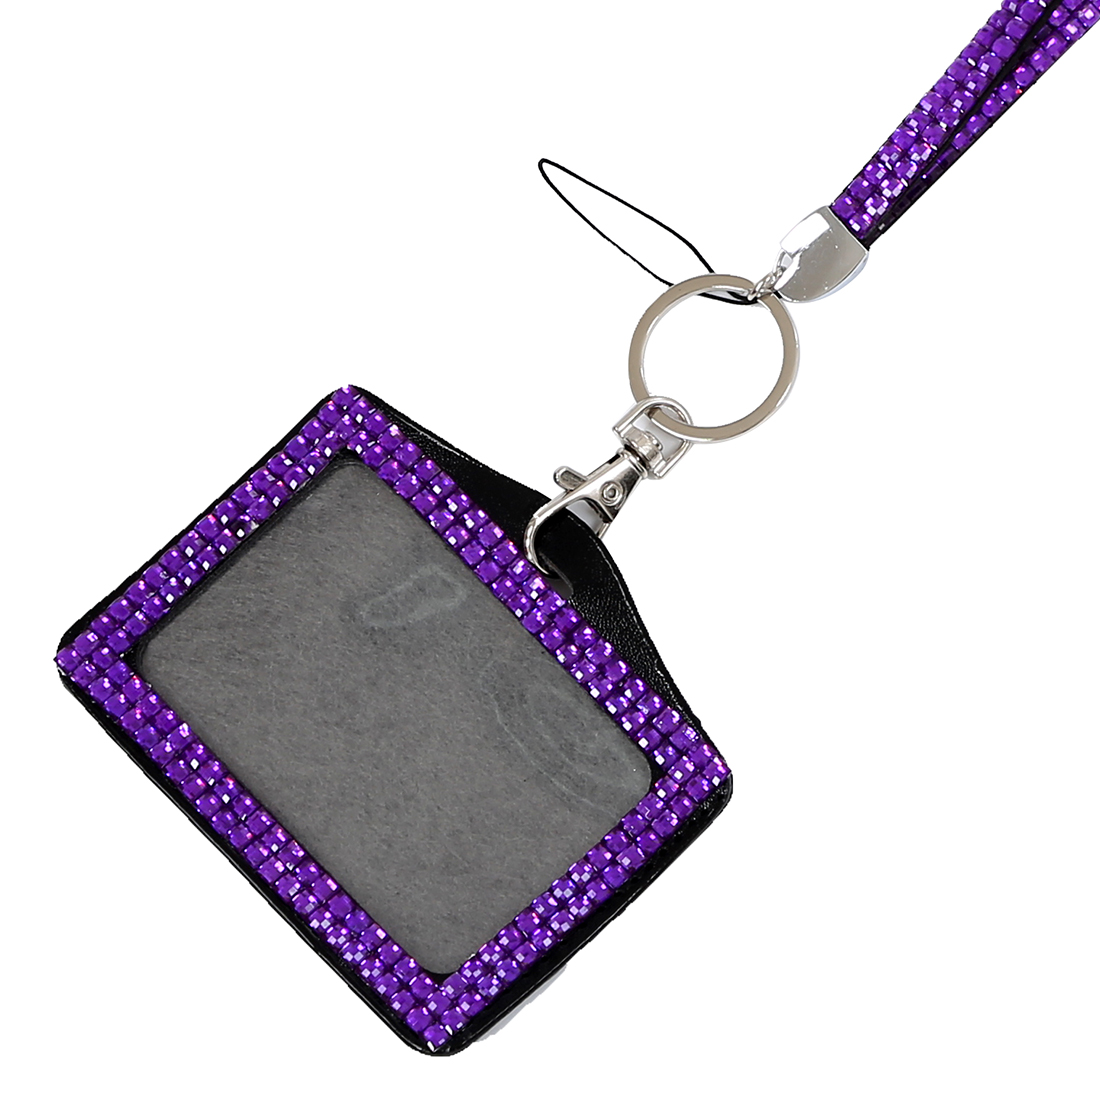 Coin Purses & Holders Nice Fggs-horizontal Resin Rhinestone Work Card Id Case Holder Lanyard Sling High Quality Materials